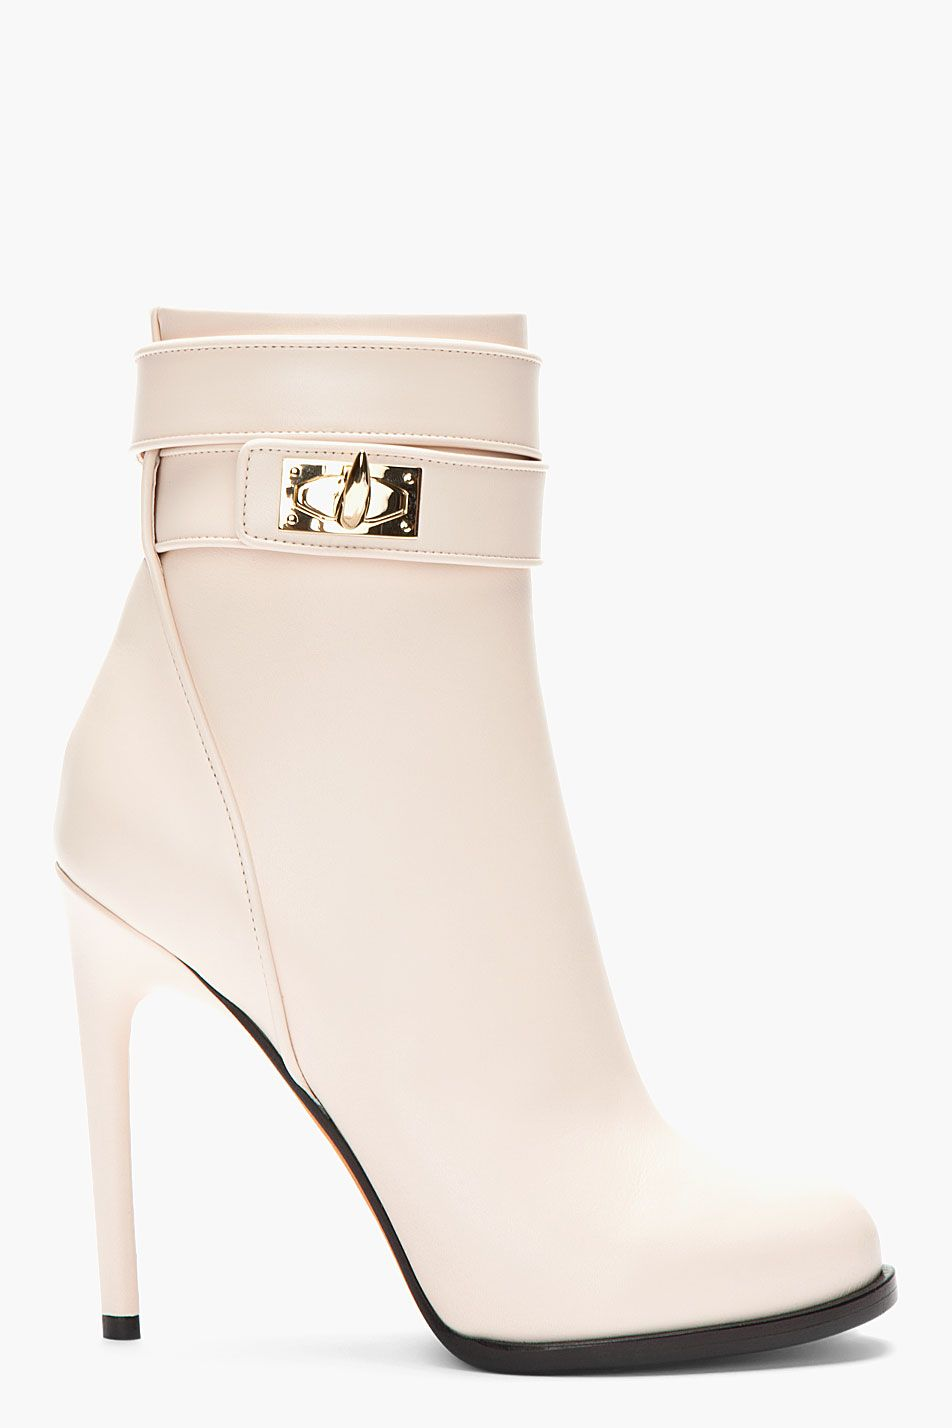 White leather 'Bink' mid block heel ankle boots cheap sale supply buy cheap price clearance visit new discount countdown package QoYX45Kjt